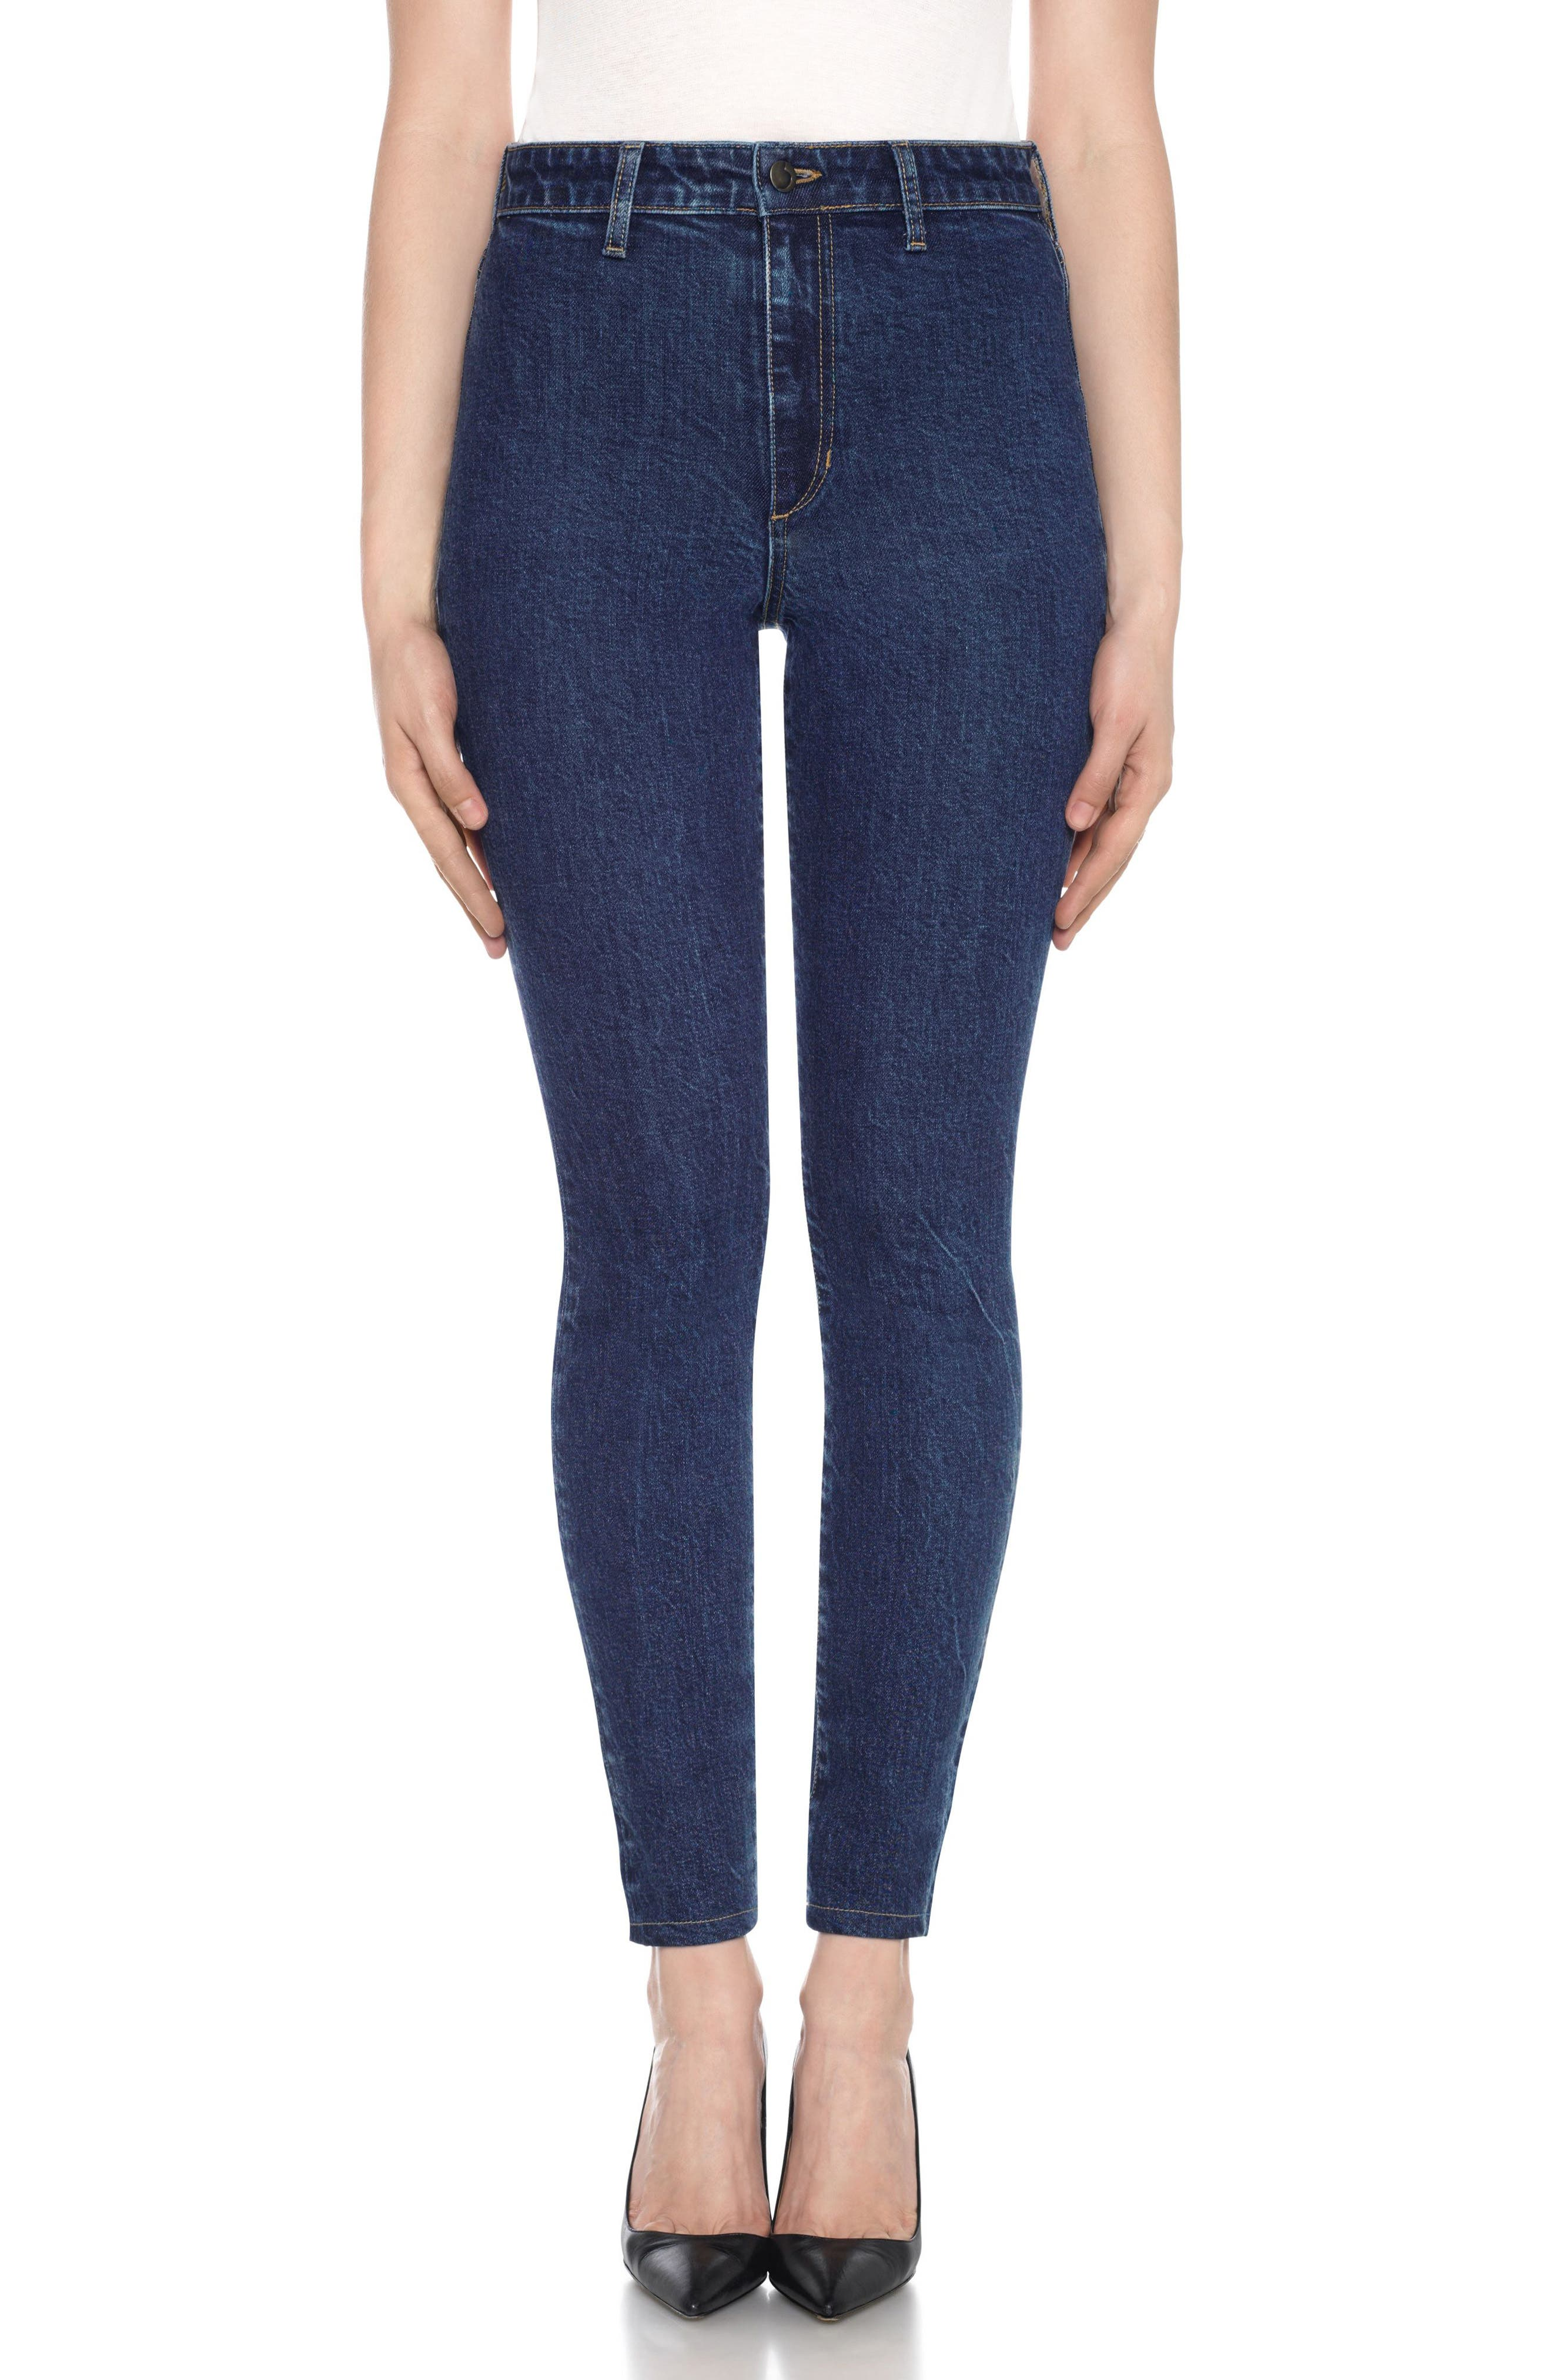 Charlie High Waist Ankle Skinny Jeans,                             Main thumbnail 1, color,                             Sheela